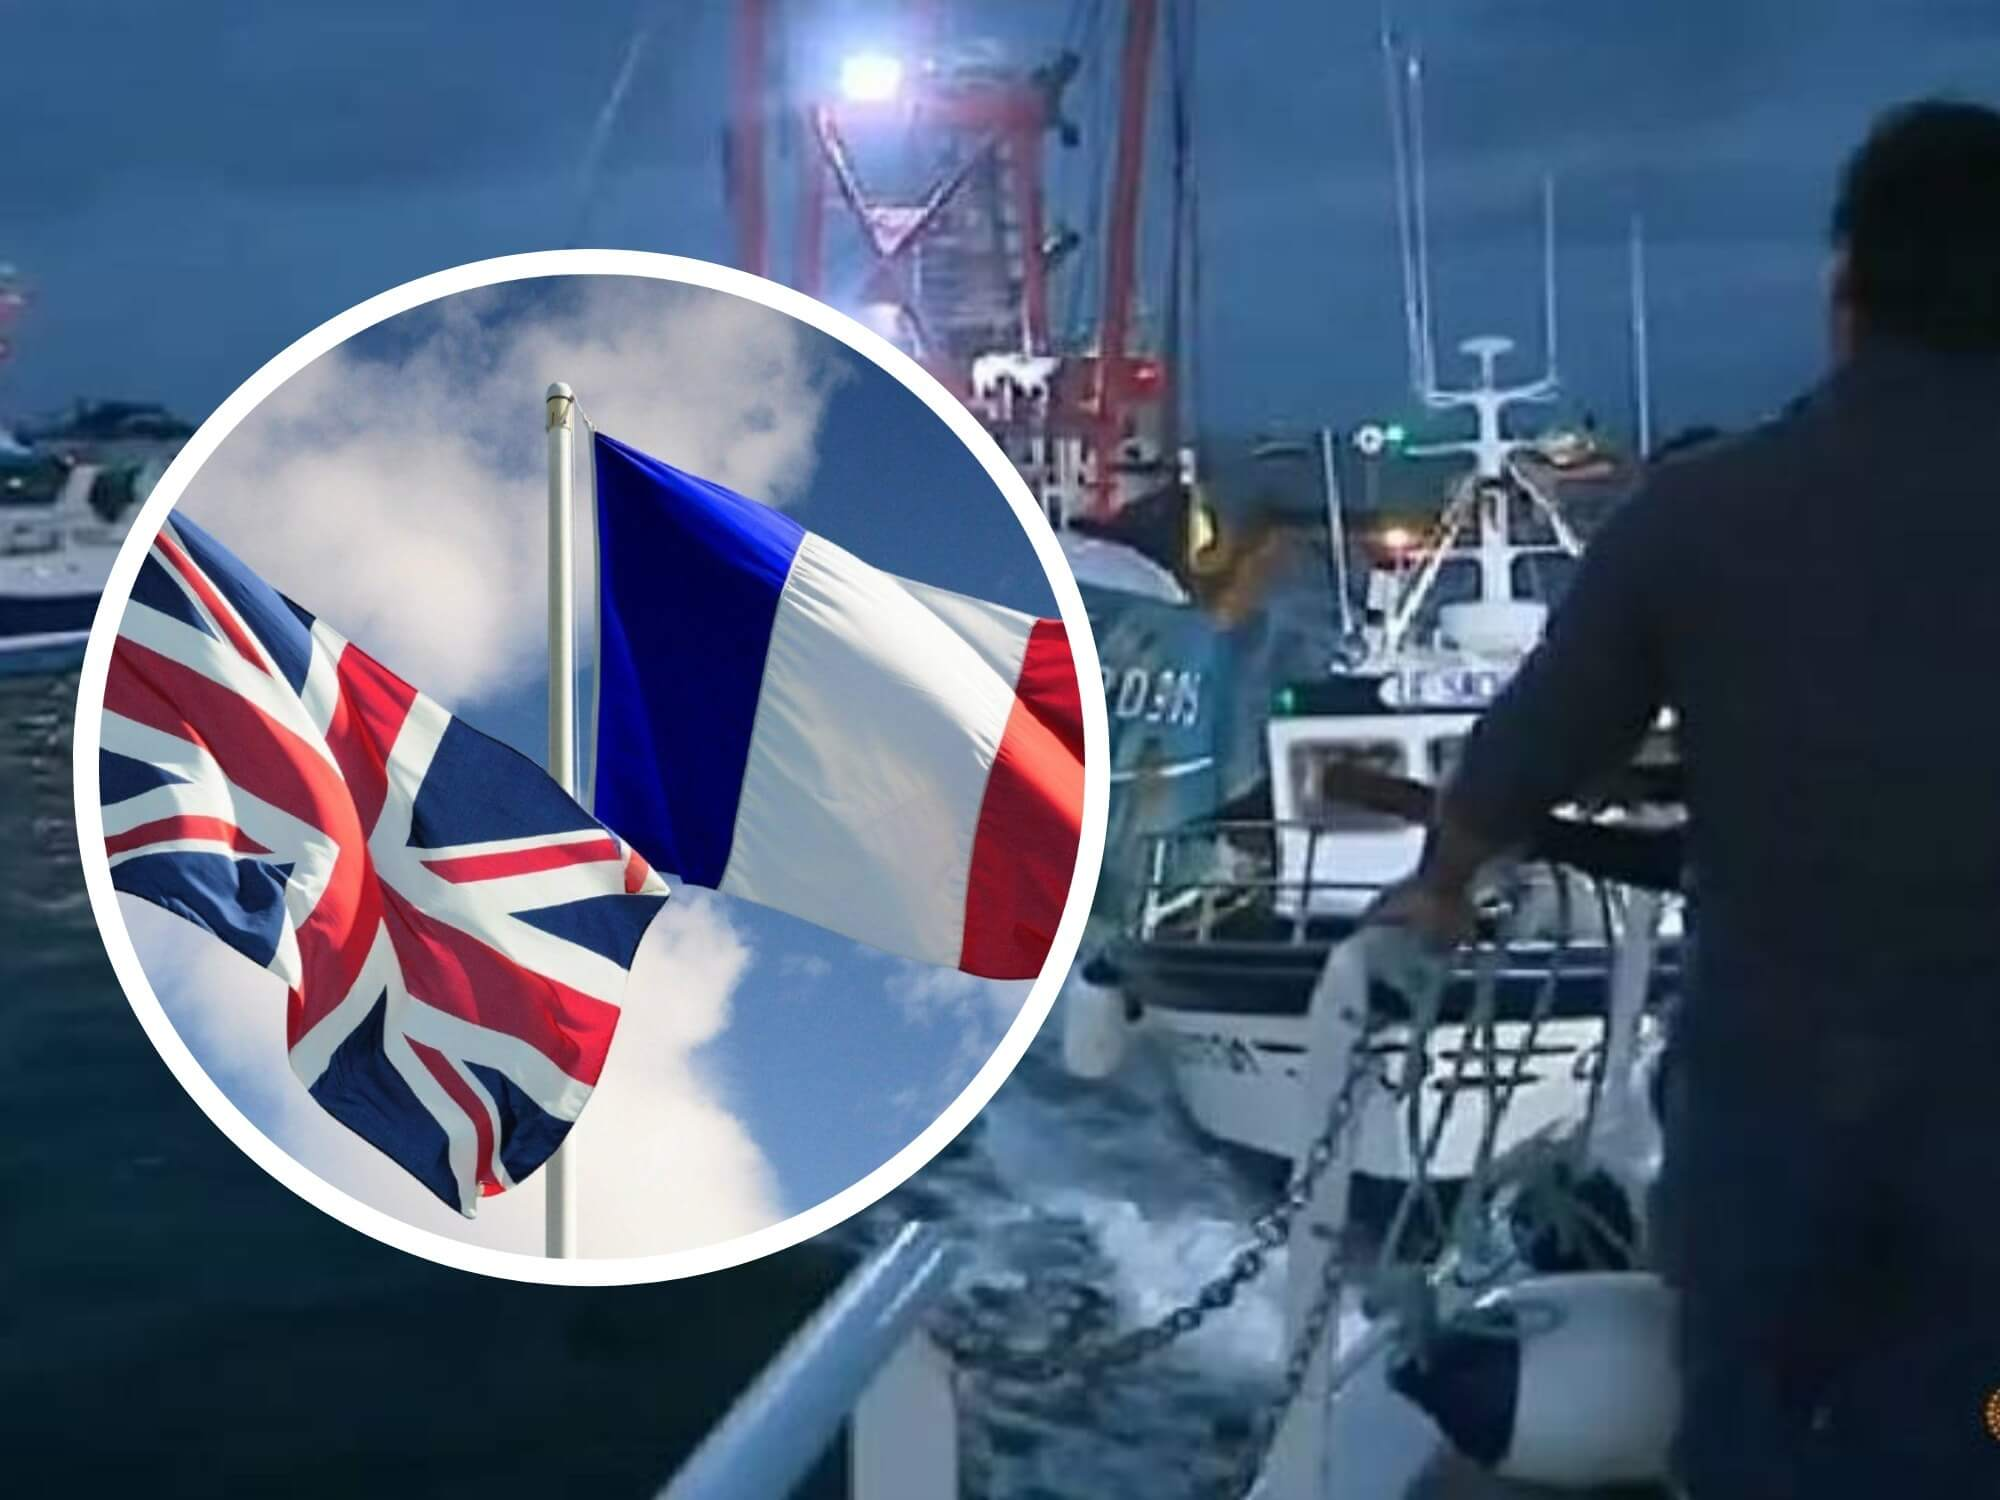 Scallop Wars: French and British Fishermen Fight With Throwing Stones and Clashing Boats (VIDEO + Photos)